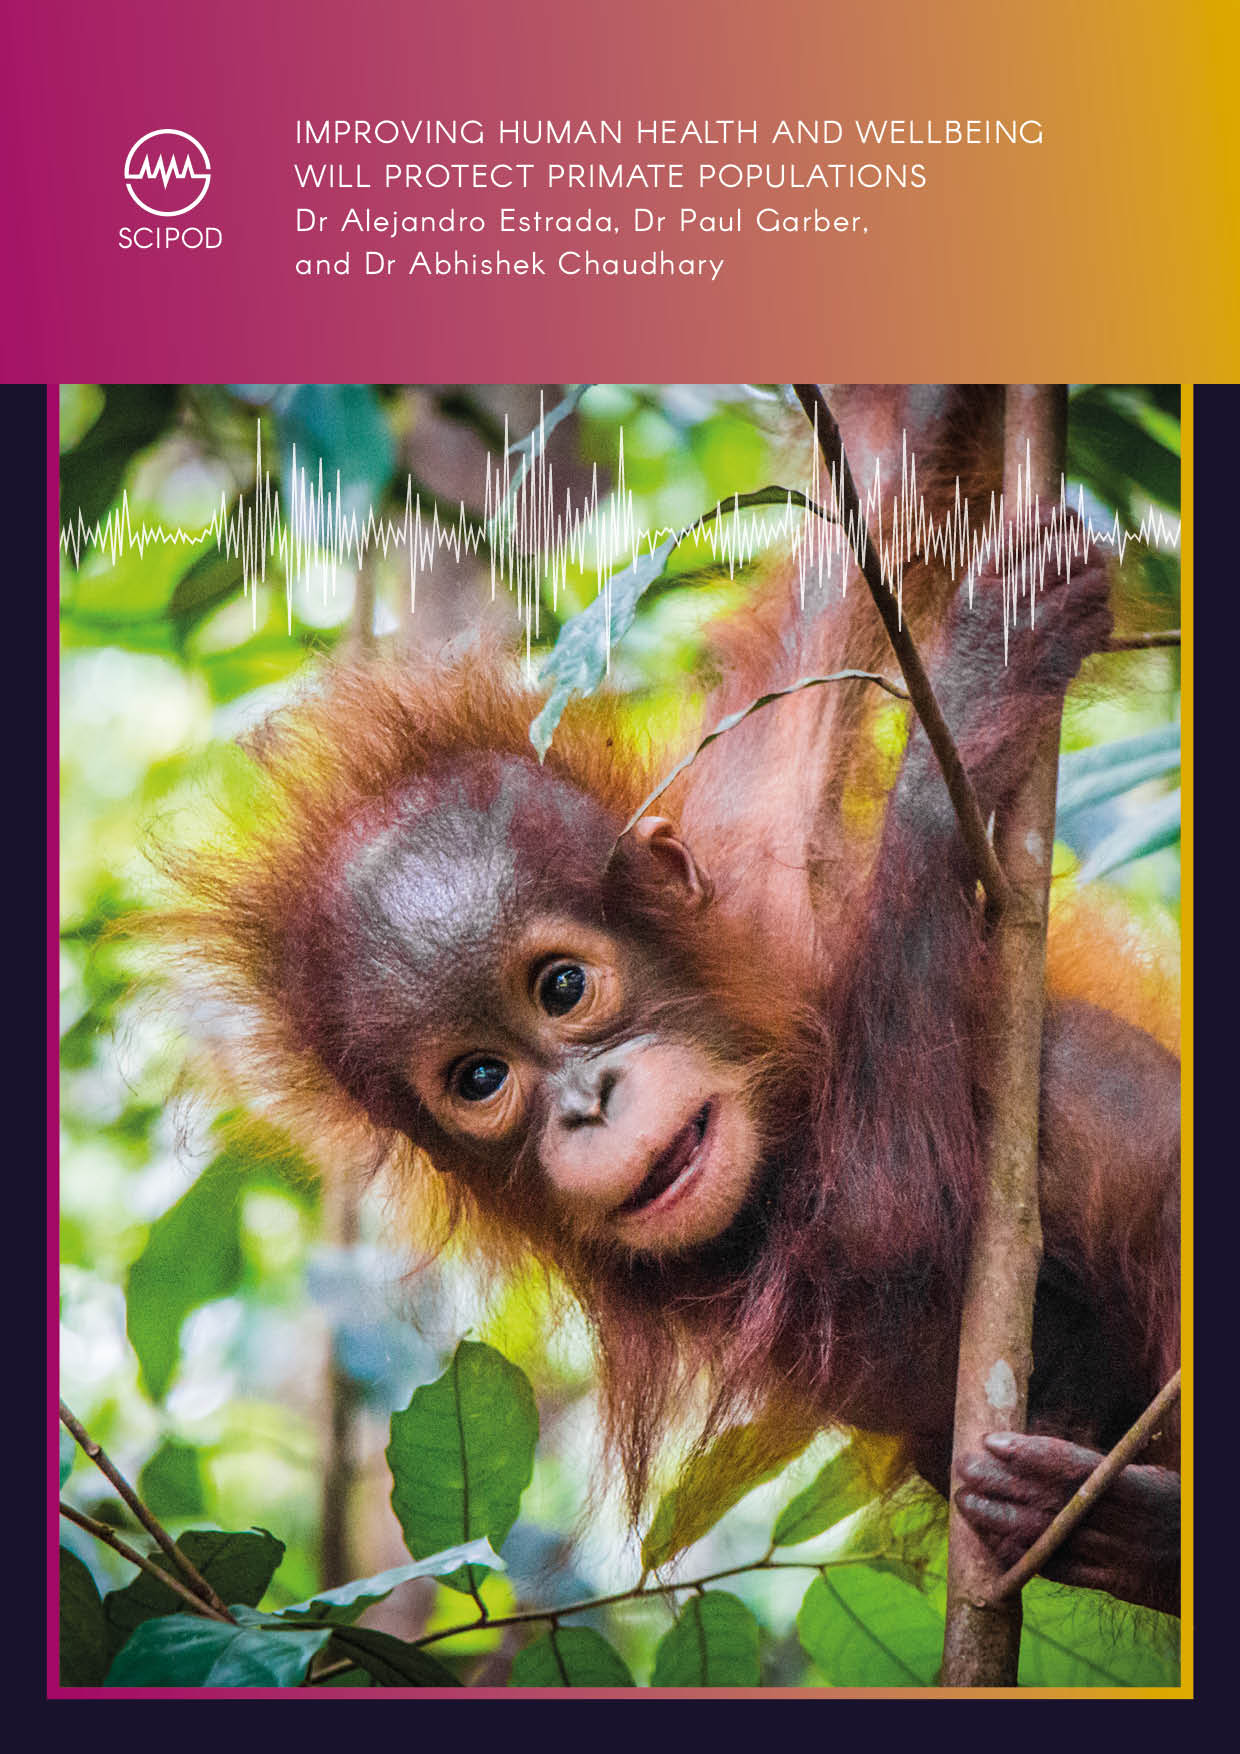 Improving Human Health and Wellbeing Will Protect Primate Populations – Dr Alejandro Estrada, Dr Paul Garber, and Dr Abhishek Chaudhary